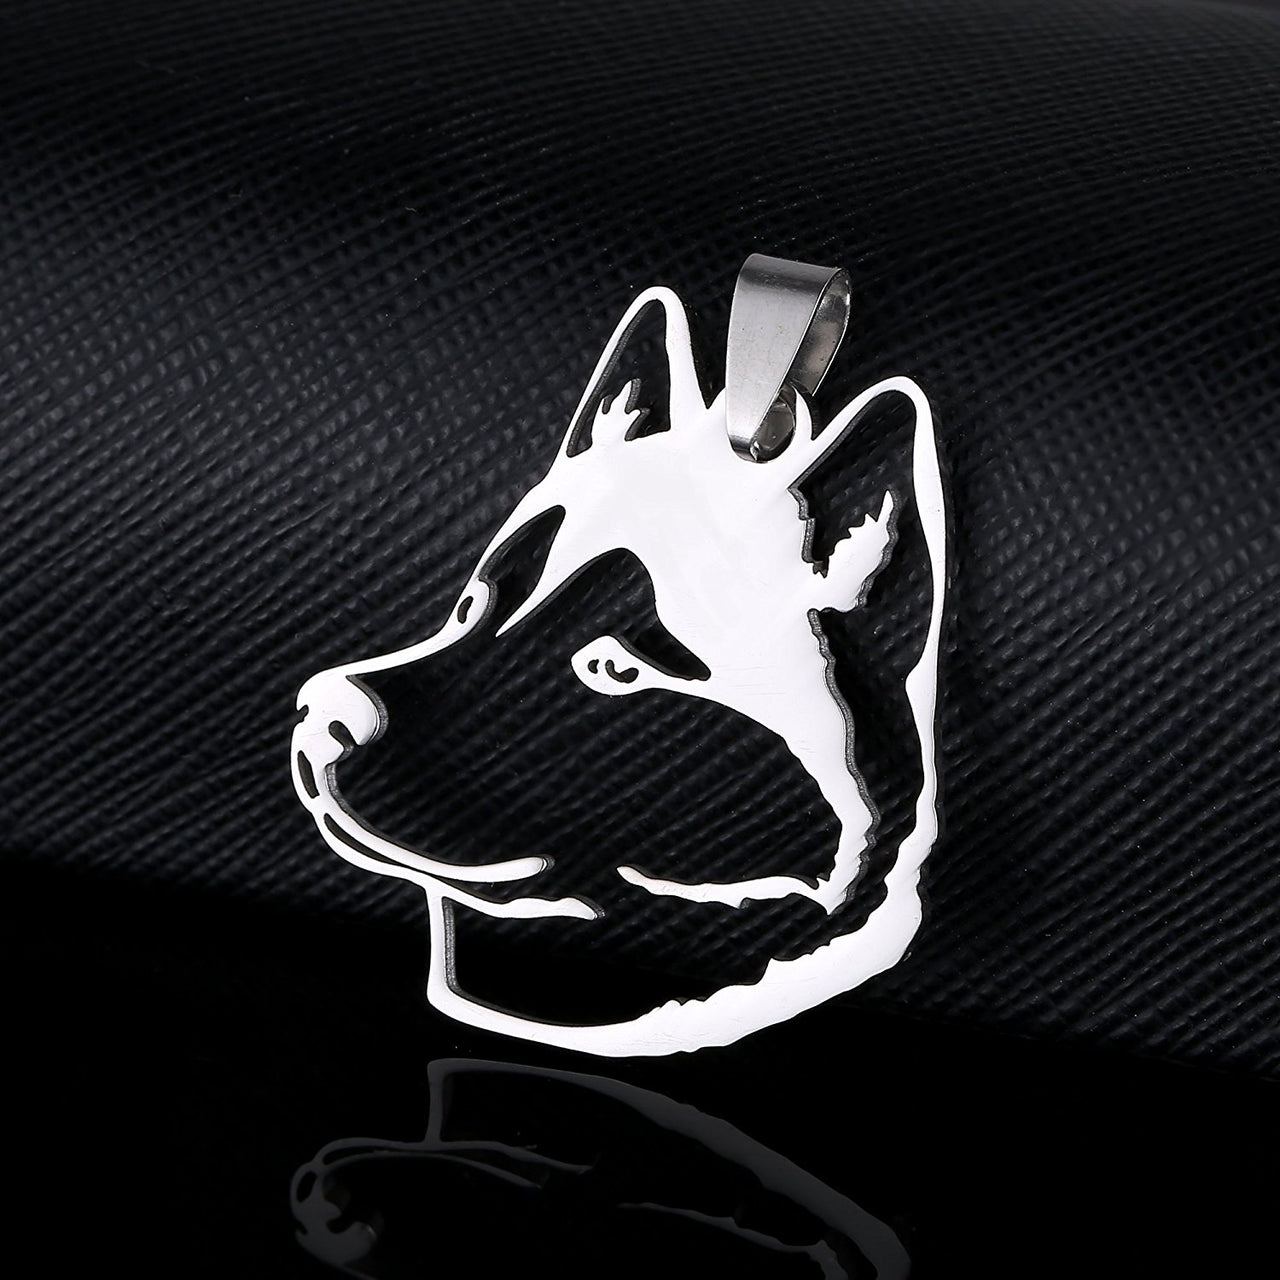 Stainless Steel Siberian Husky Huskie Sibe Chukcha Chuksha Dog Head Pet Dog Tag Breed Collar Charm Pendant and Necklace